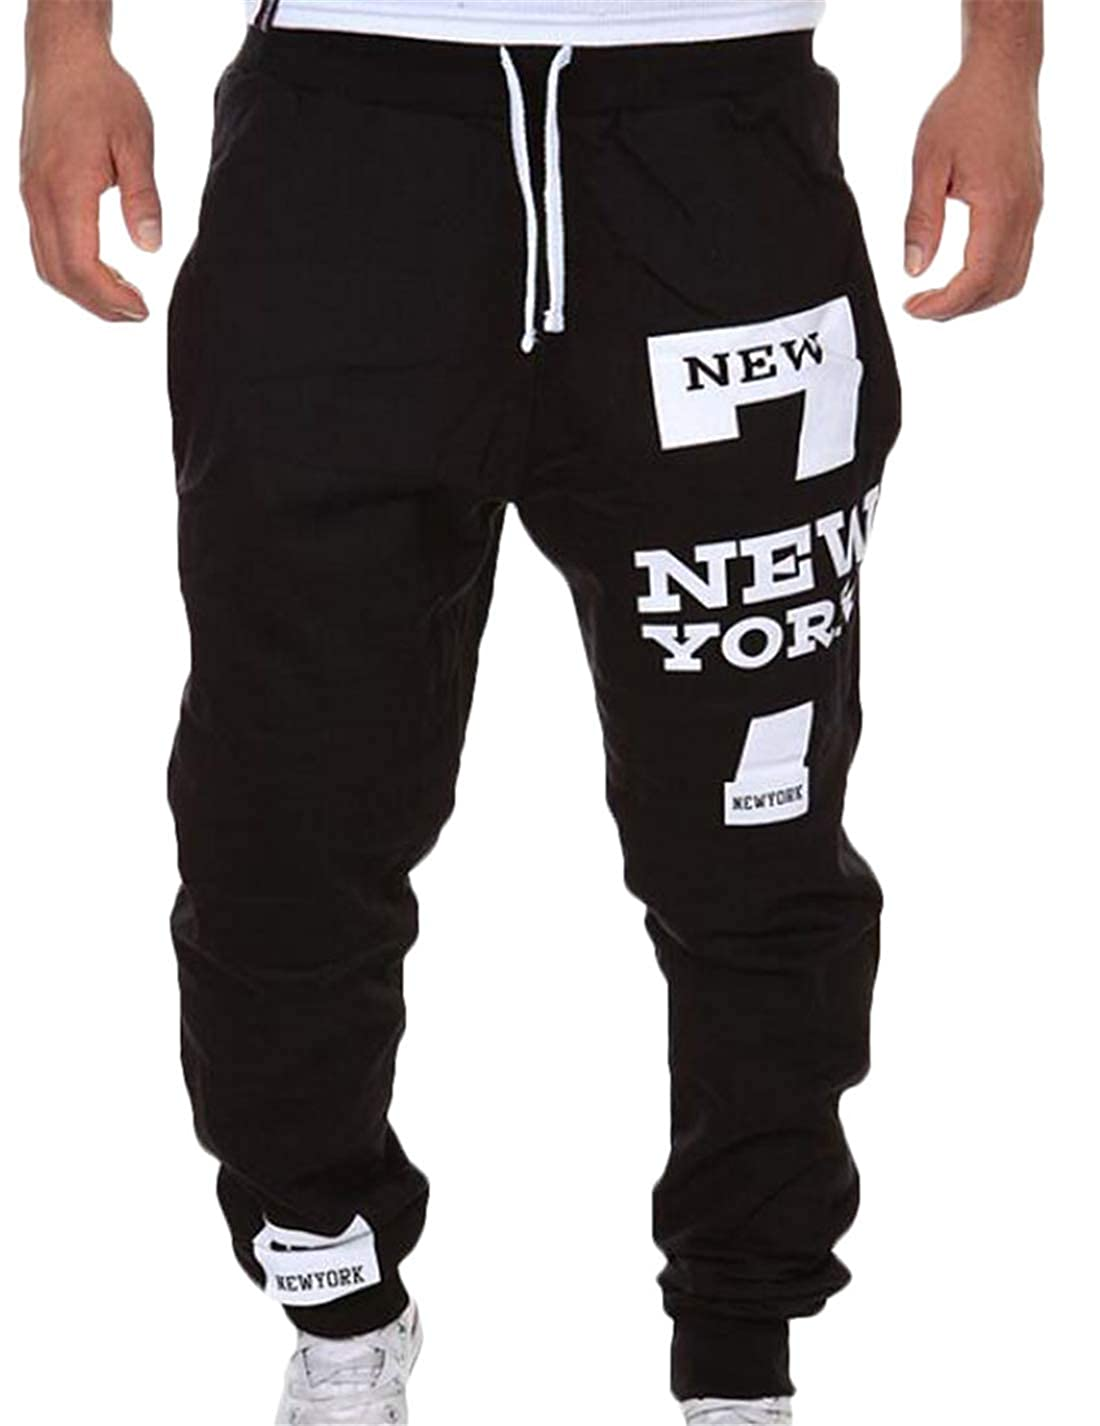 Rrive Mens Drawstring Letters Print Sweatpants Trousers Running Workout Jogger Pants